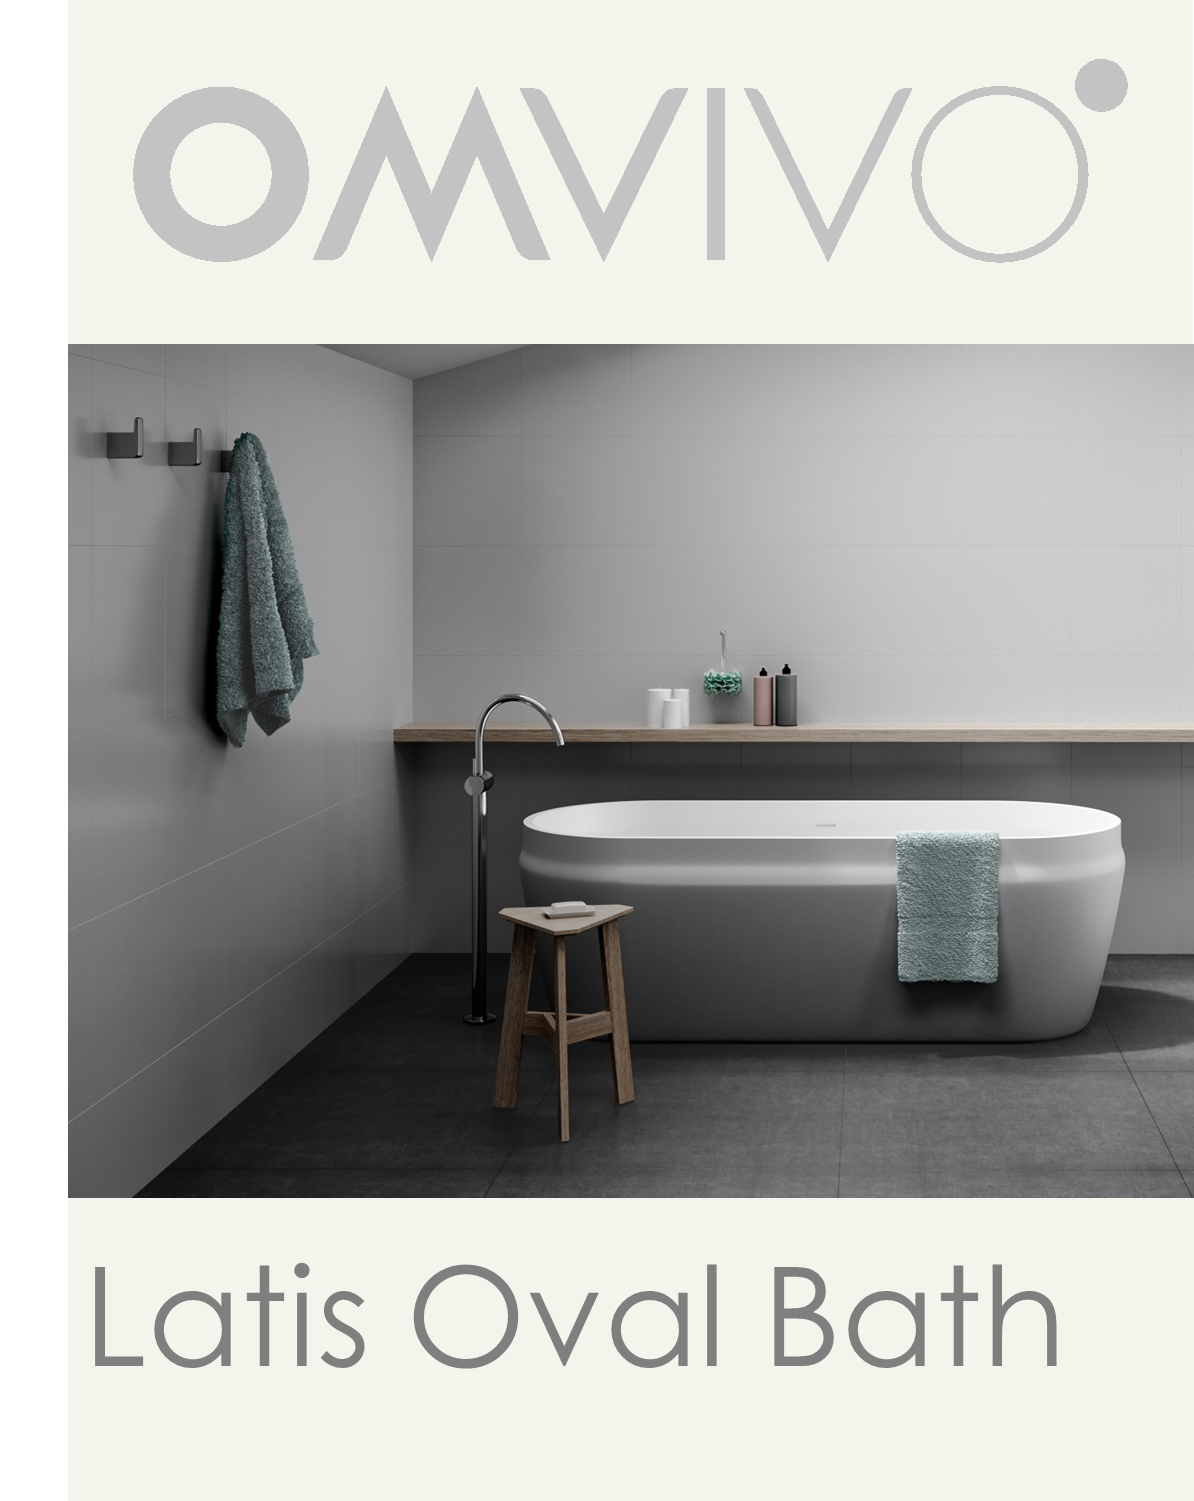 Latis Oval Bath Launch